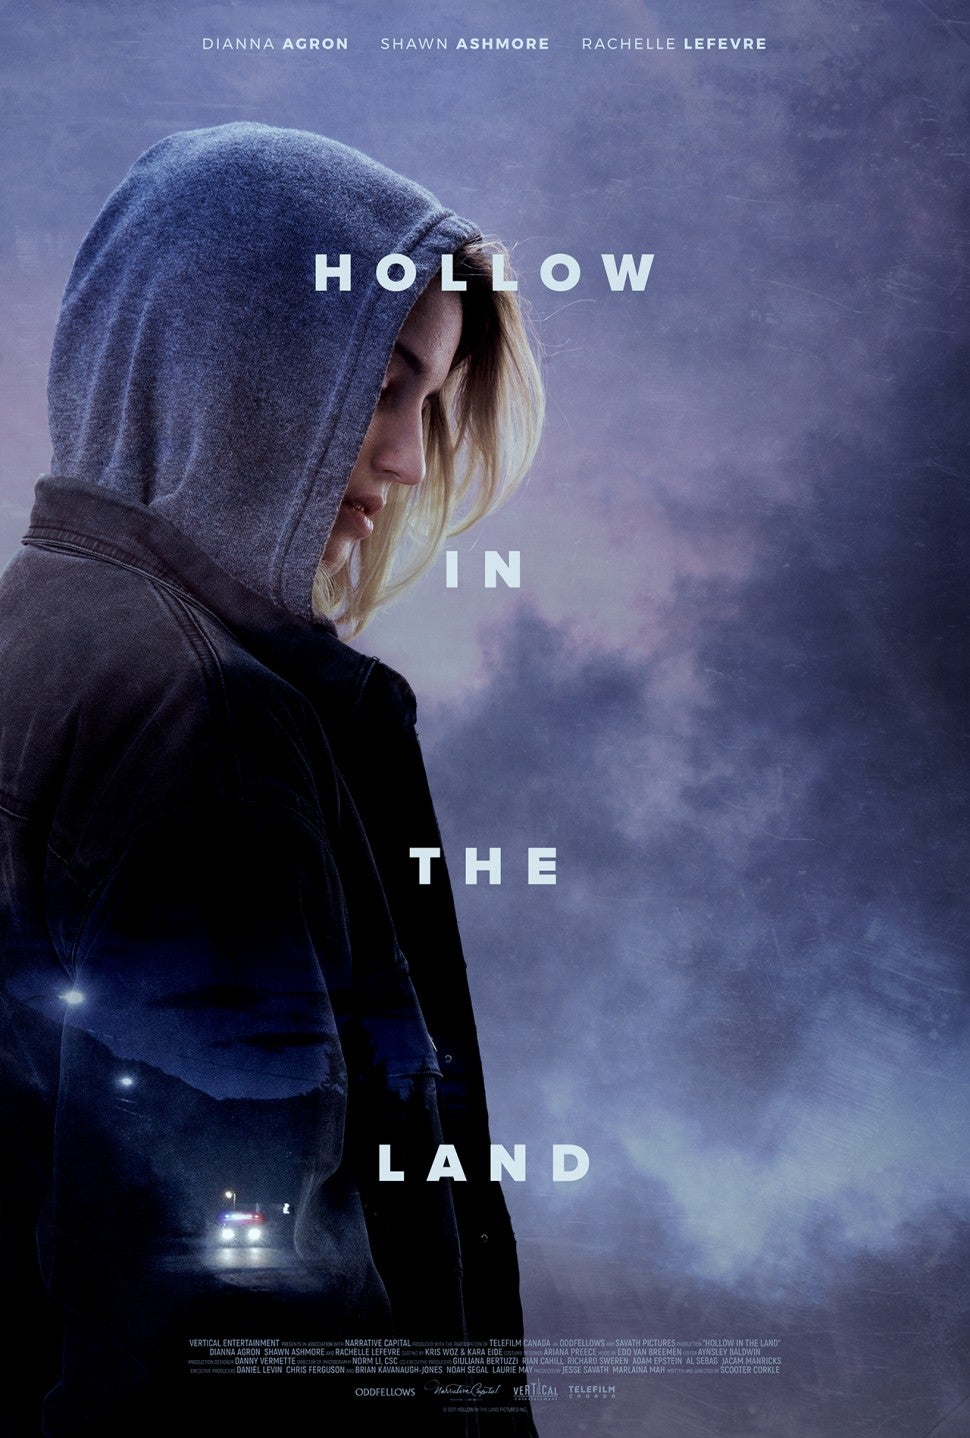 Dianna Agron, Hallow in the Land Poster